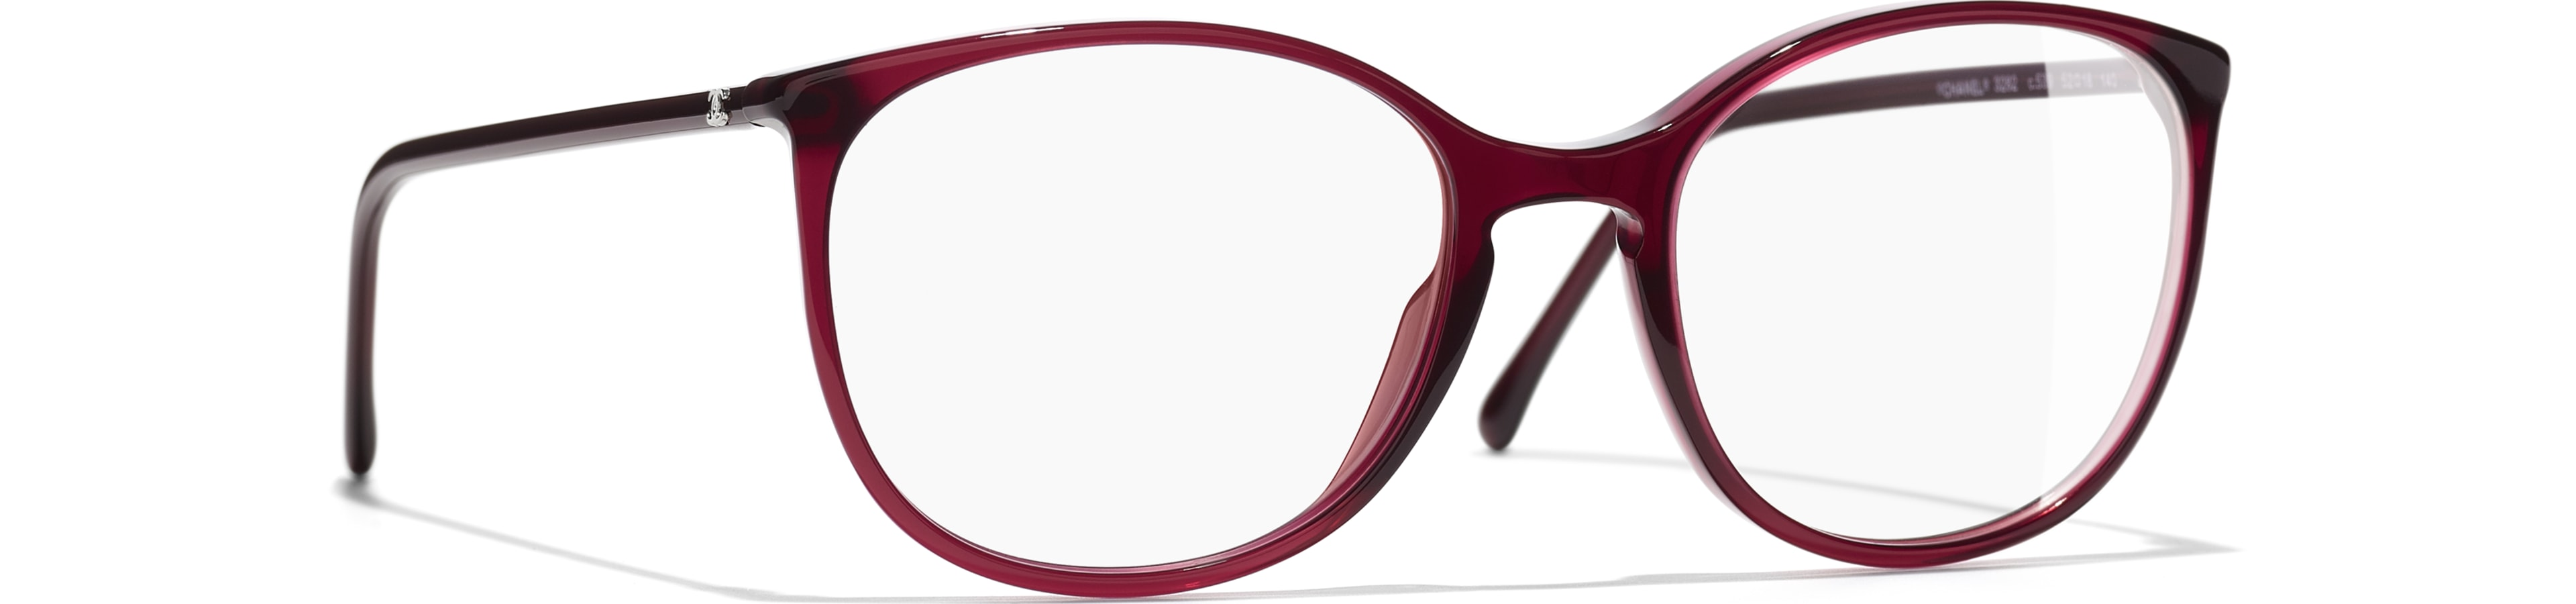 Acetate red frame.